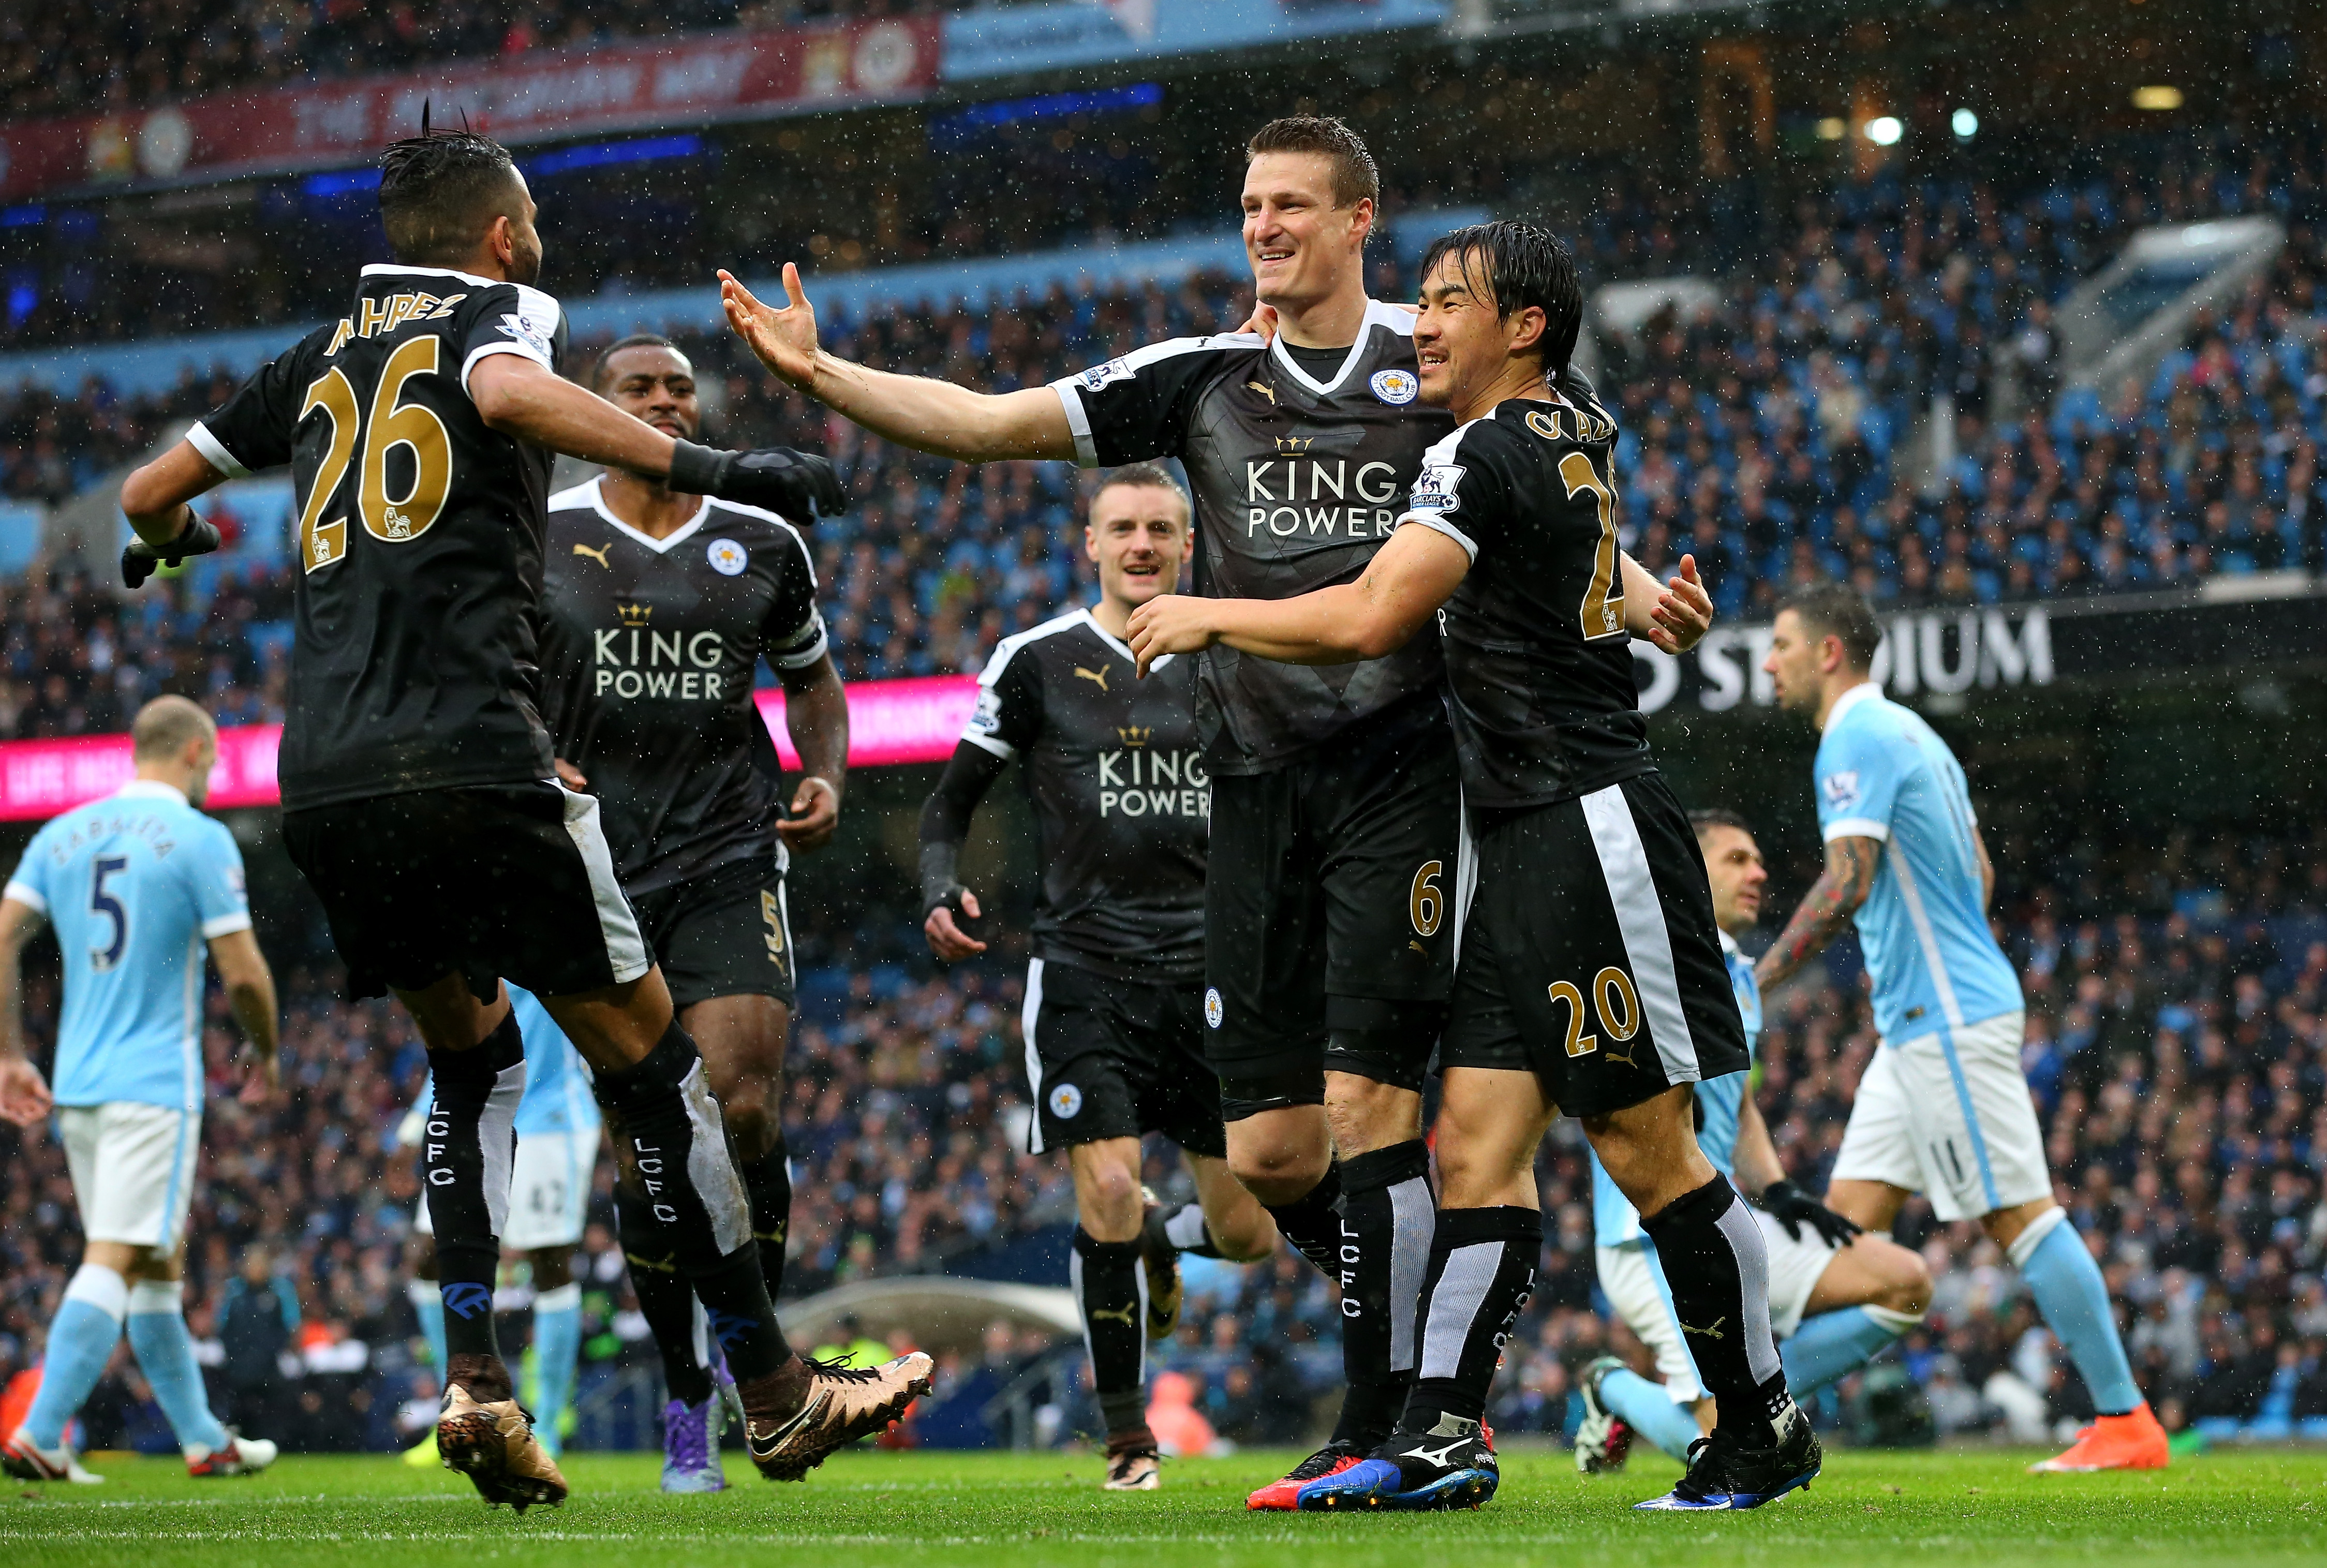 leicester city - photo #20